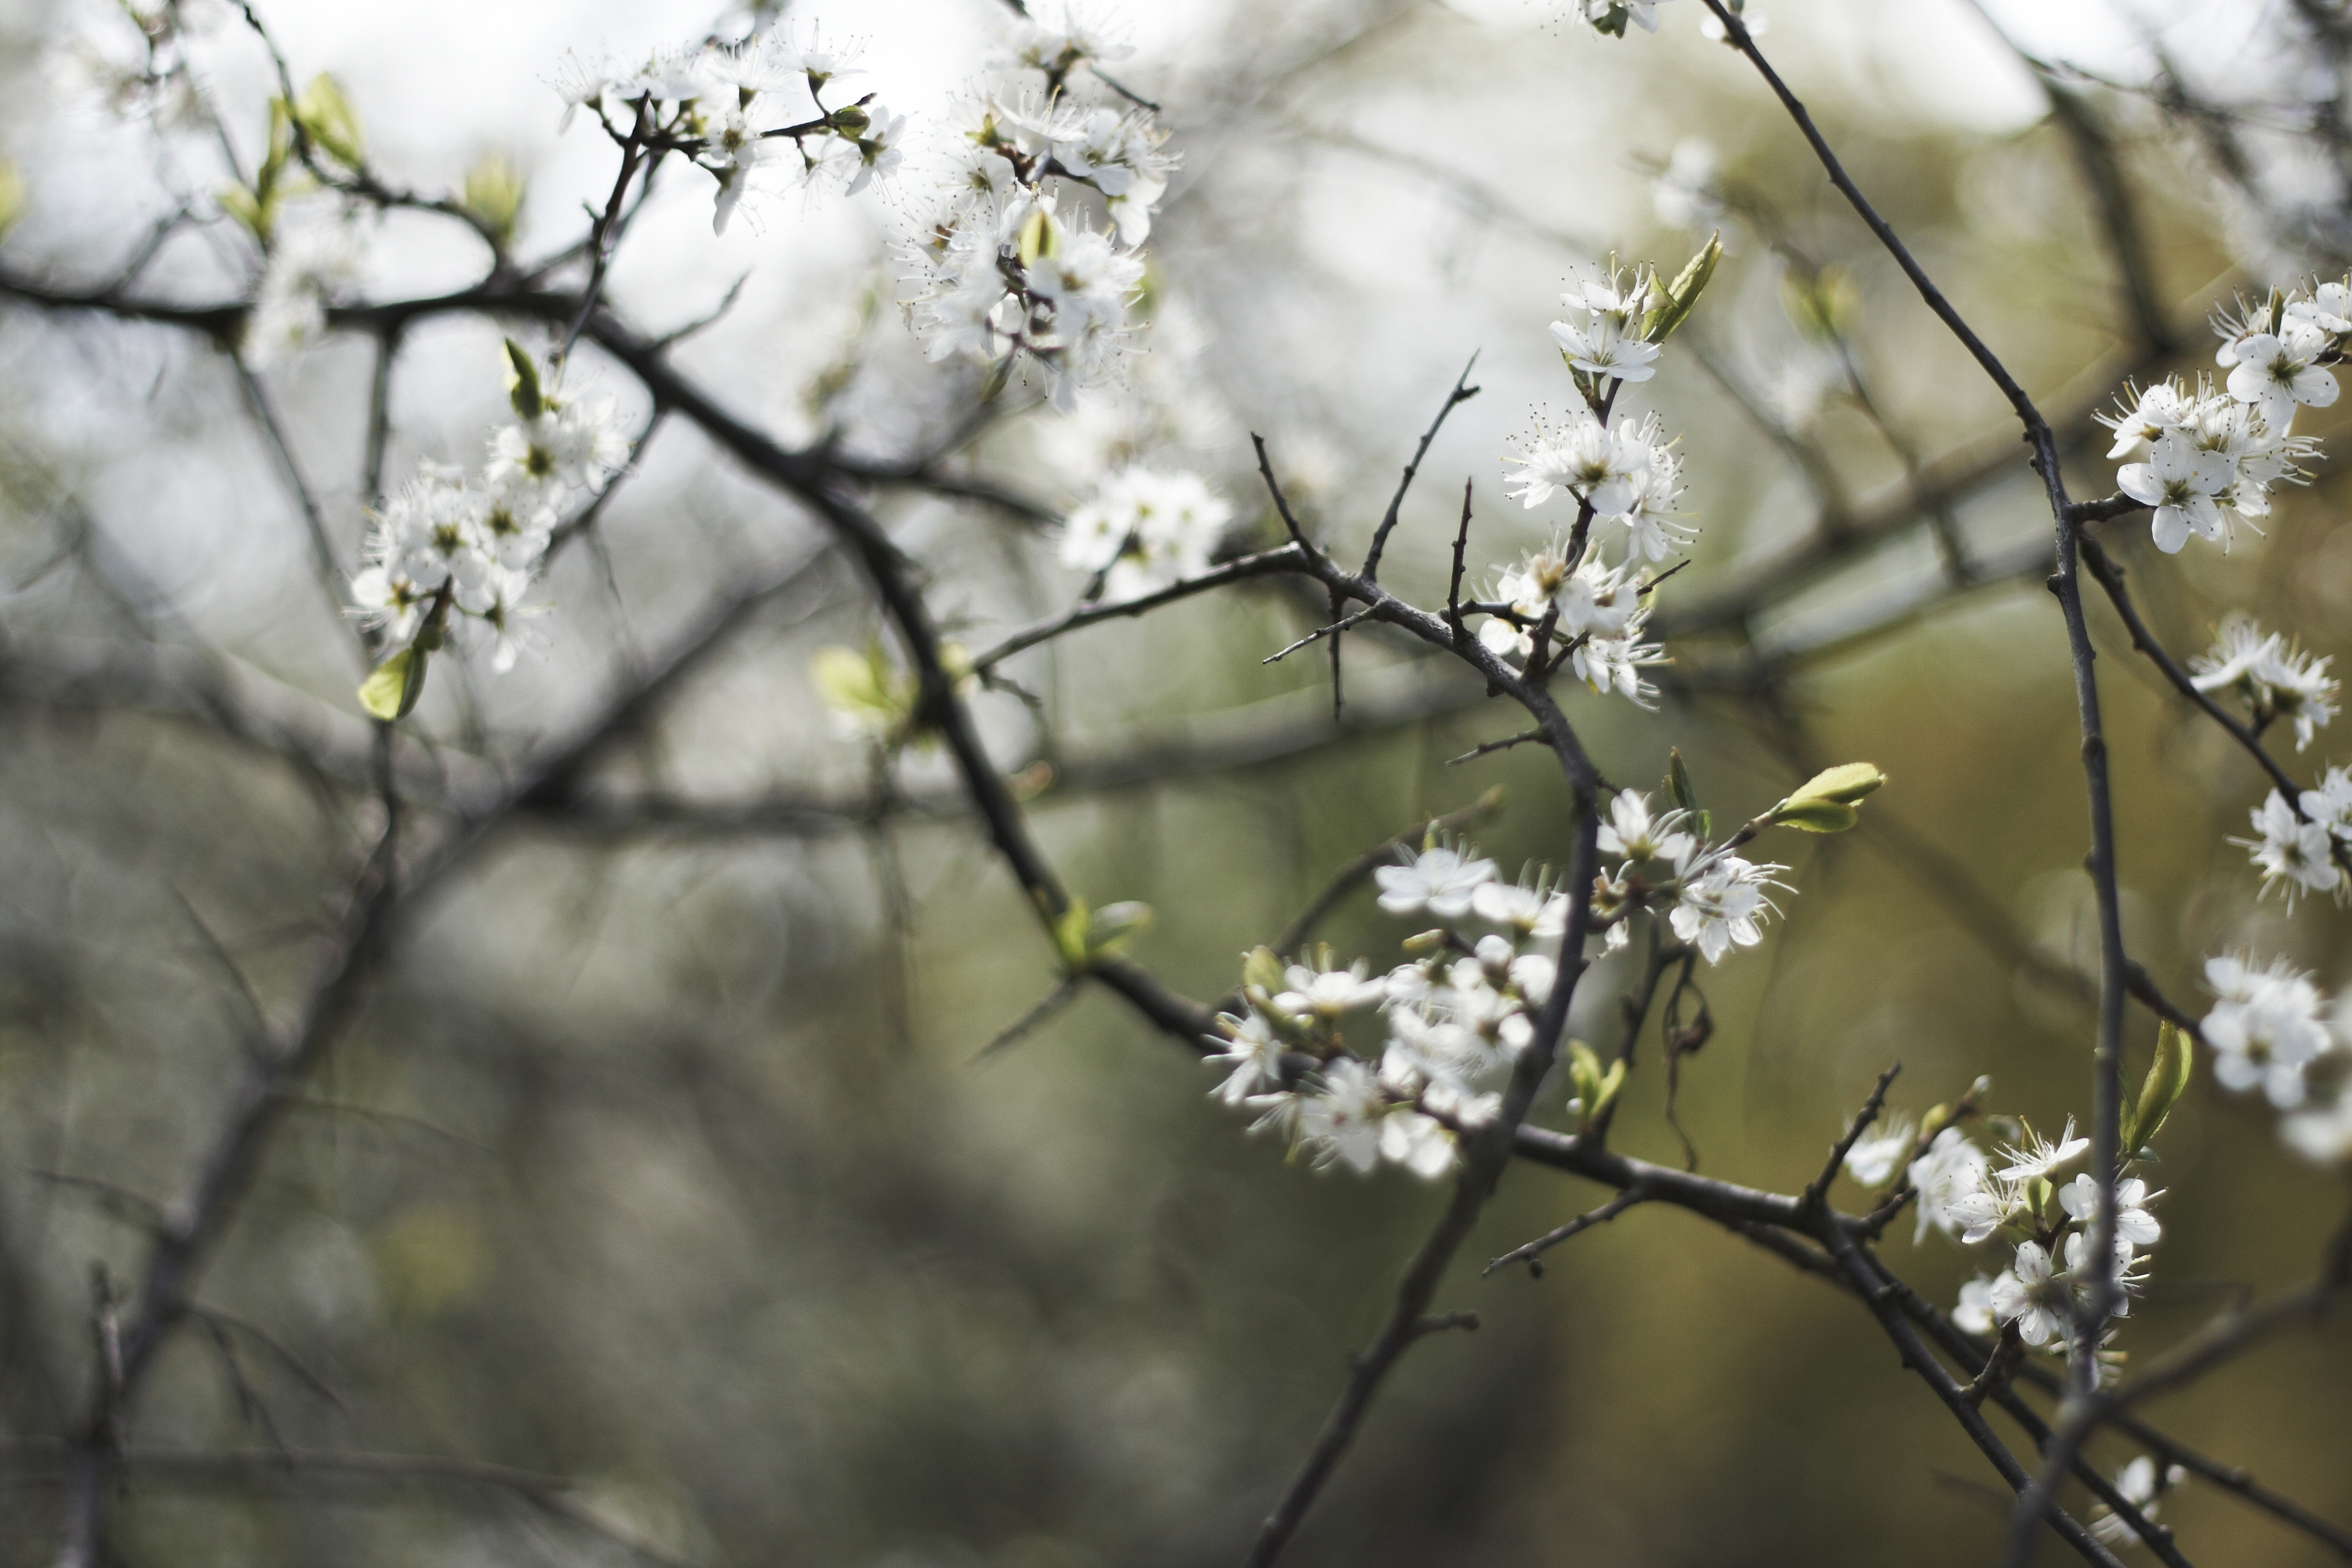 Cold Flowers, Branches, Brown, Cold, Flowers, HQ Photo